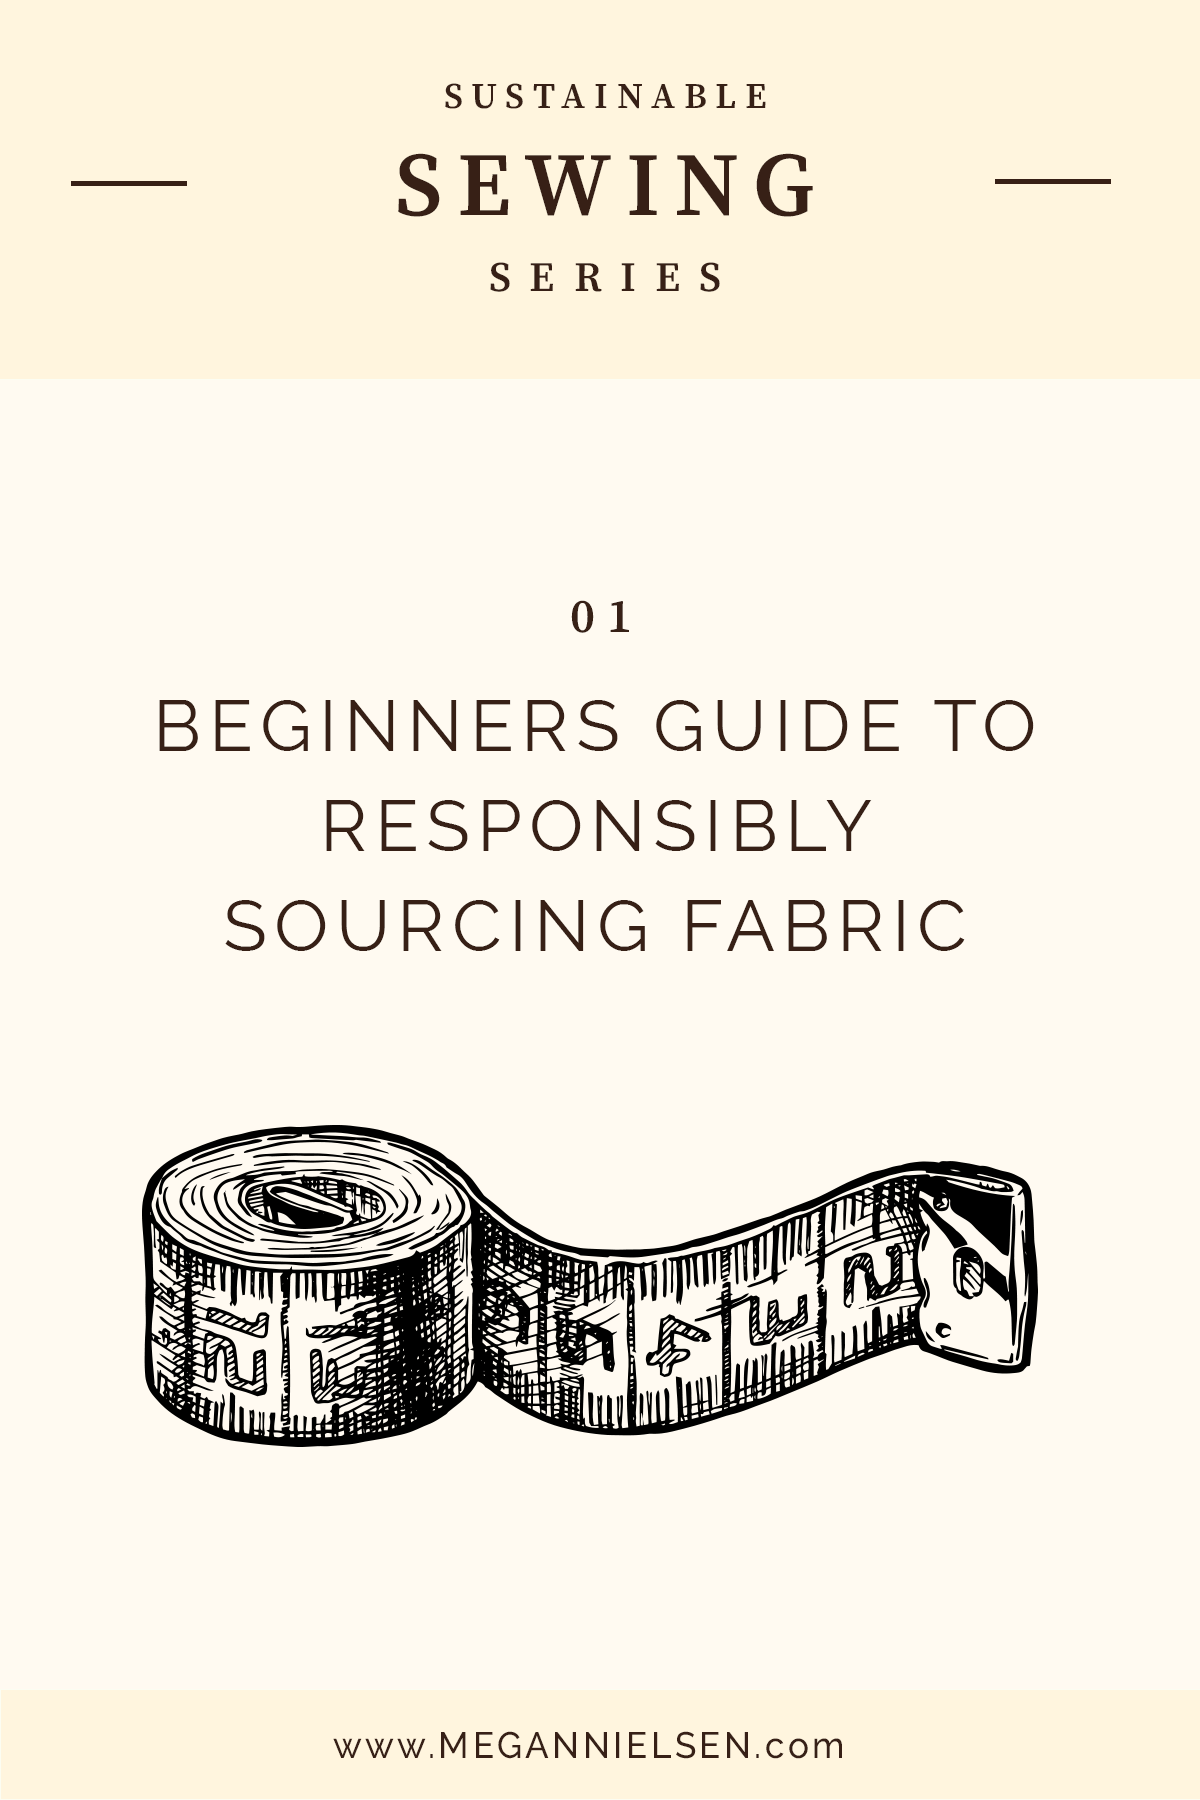 The Beginners Guide to Responsibly Sourcing Fabric // Sustainable sewing series on Megan Nielsen Design Diary